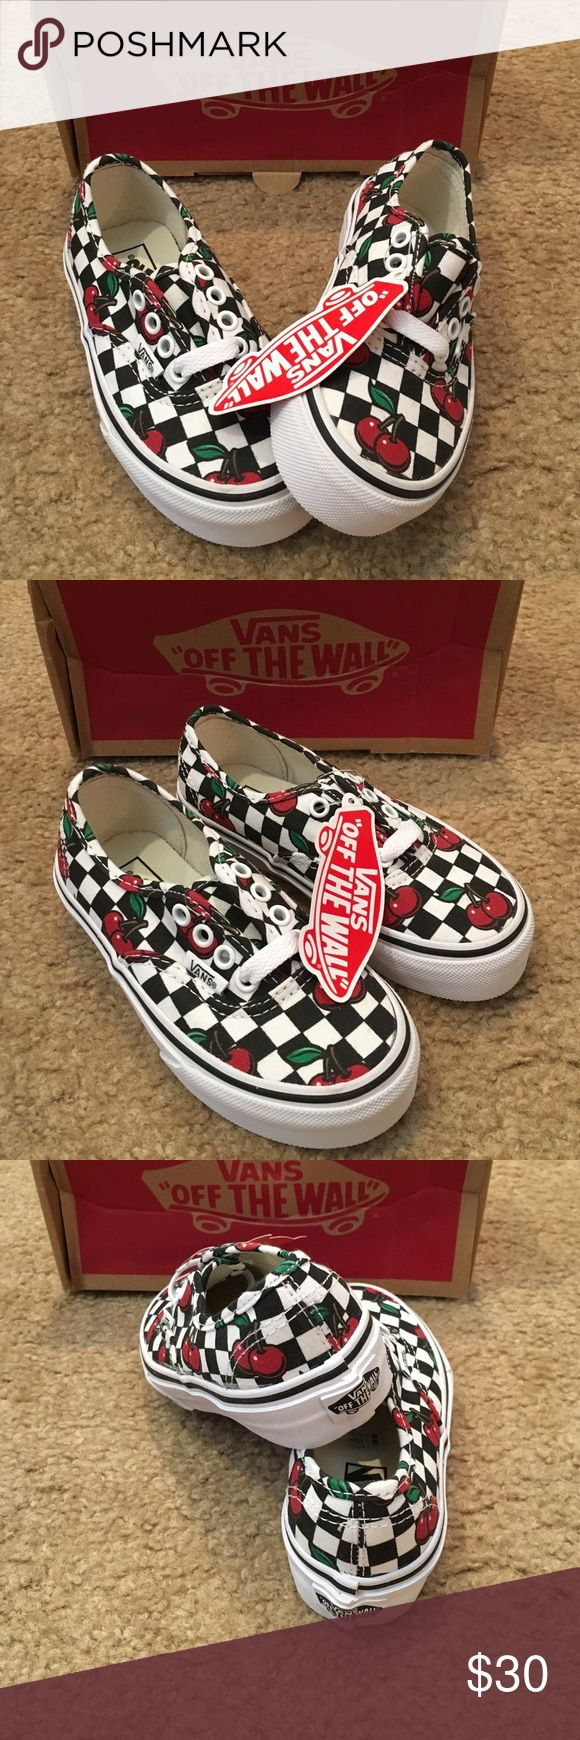 Unisex Kids Authentic Cherry Checkers Vans shoes New in box. Black/white. Cherries. Little kid size 10.5 Vans Shoes Sneakers